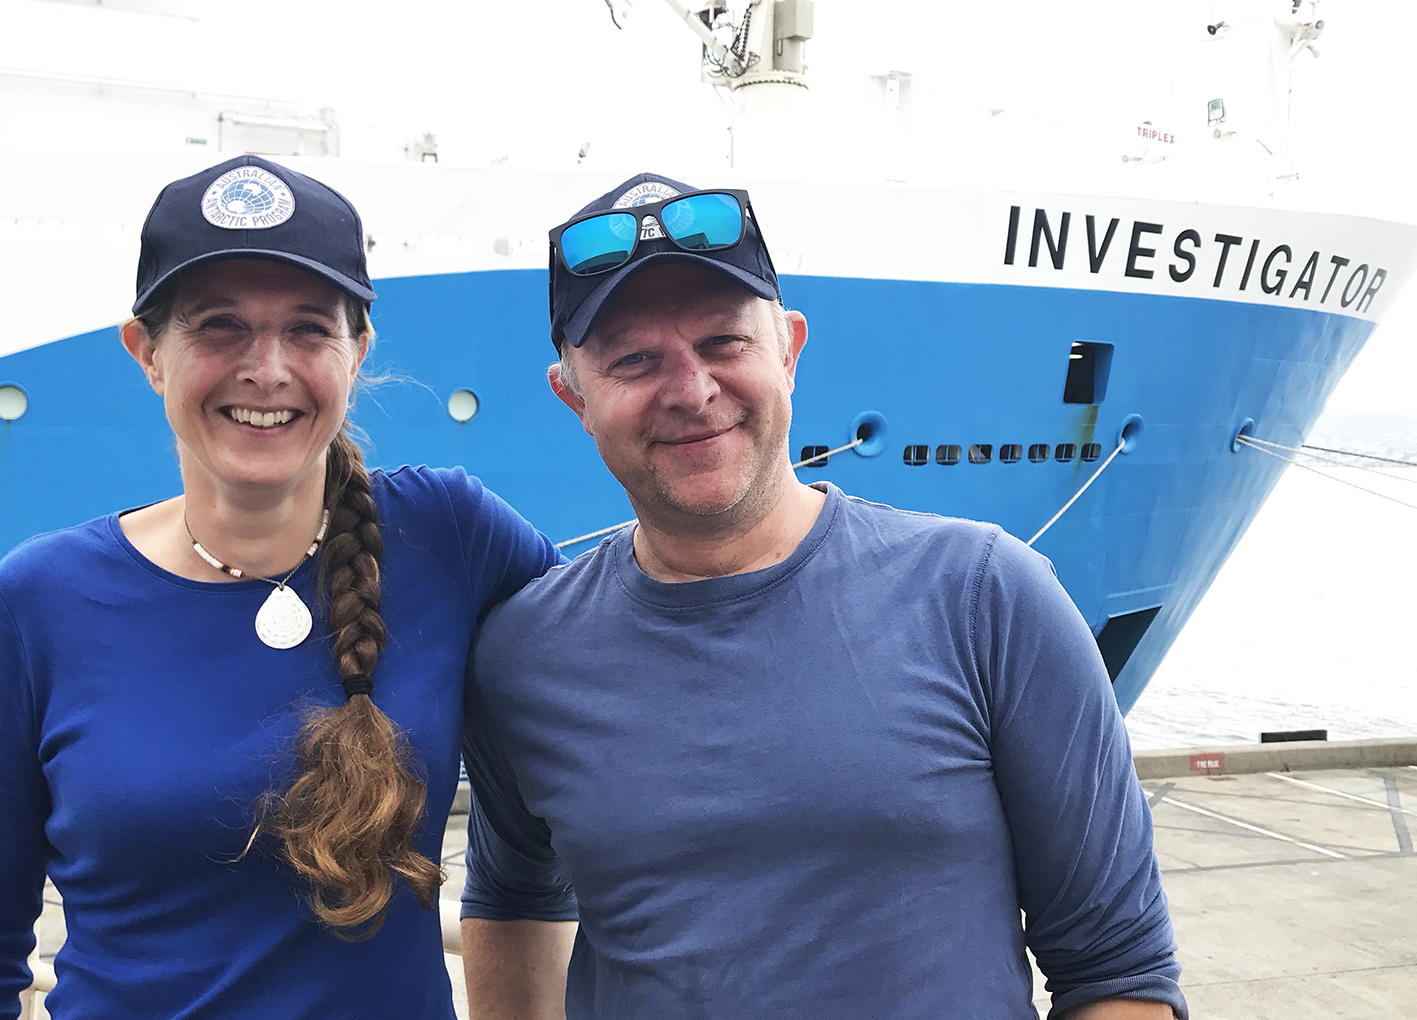 Elanor Bell and Mike Double joining Investigator's whale voyage 2019